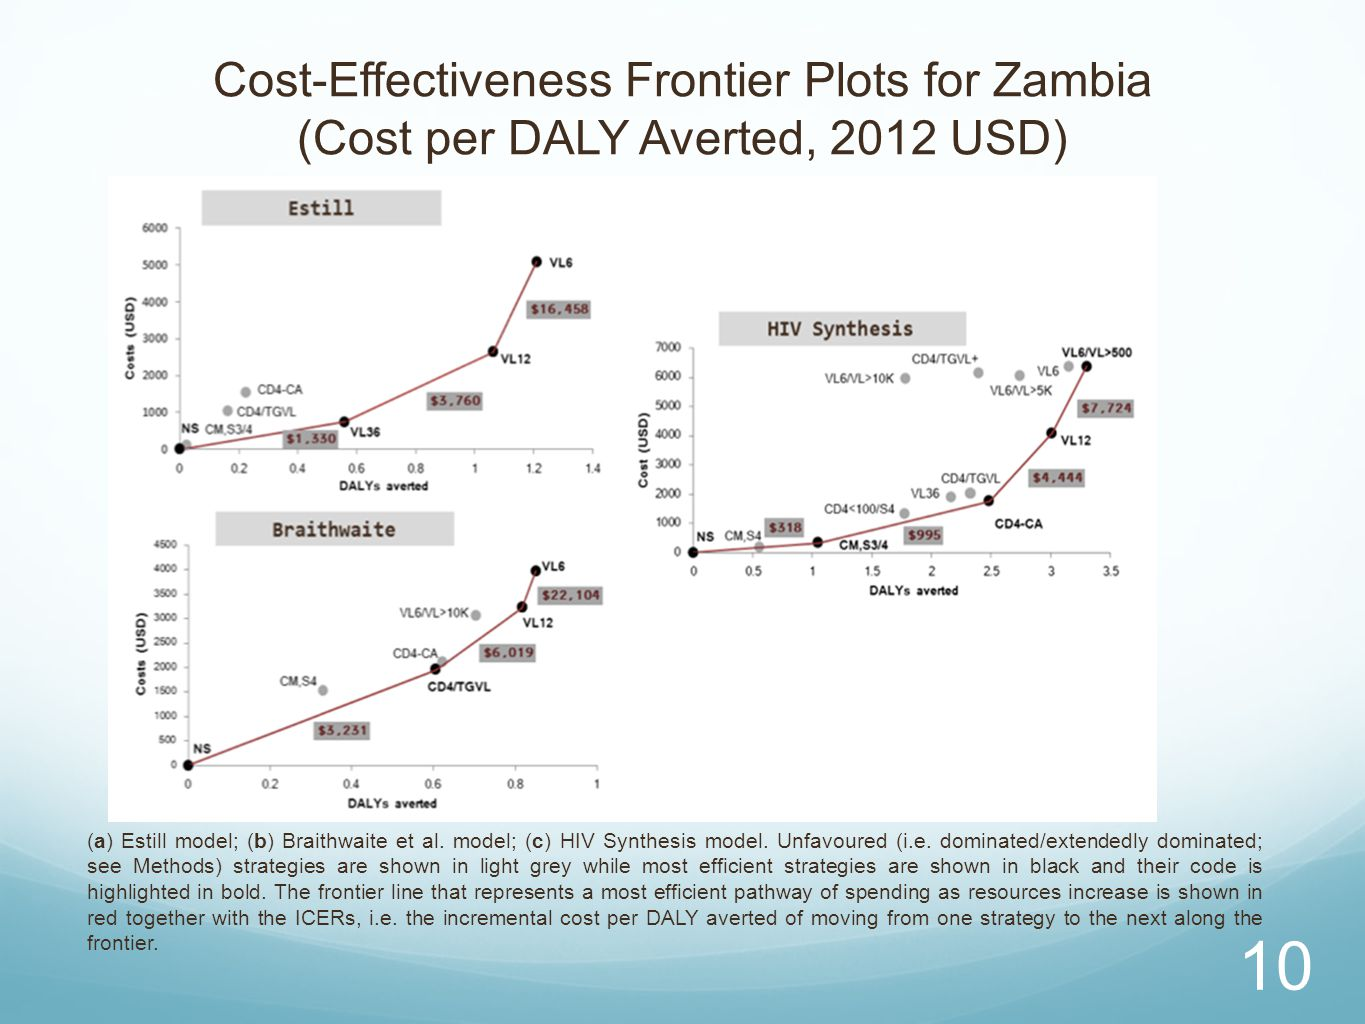 Cost-Effectiveness Frontier Plots for Zambia (Cost per DALY Averted, 2012 USD)